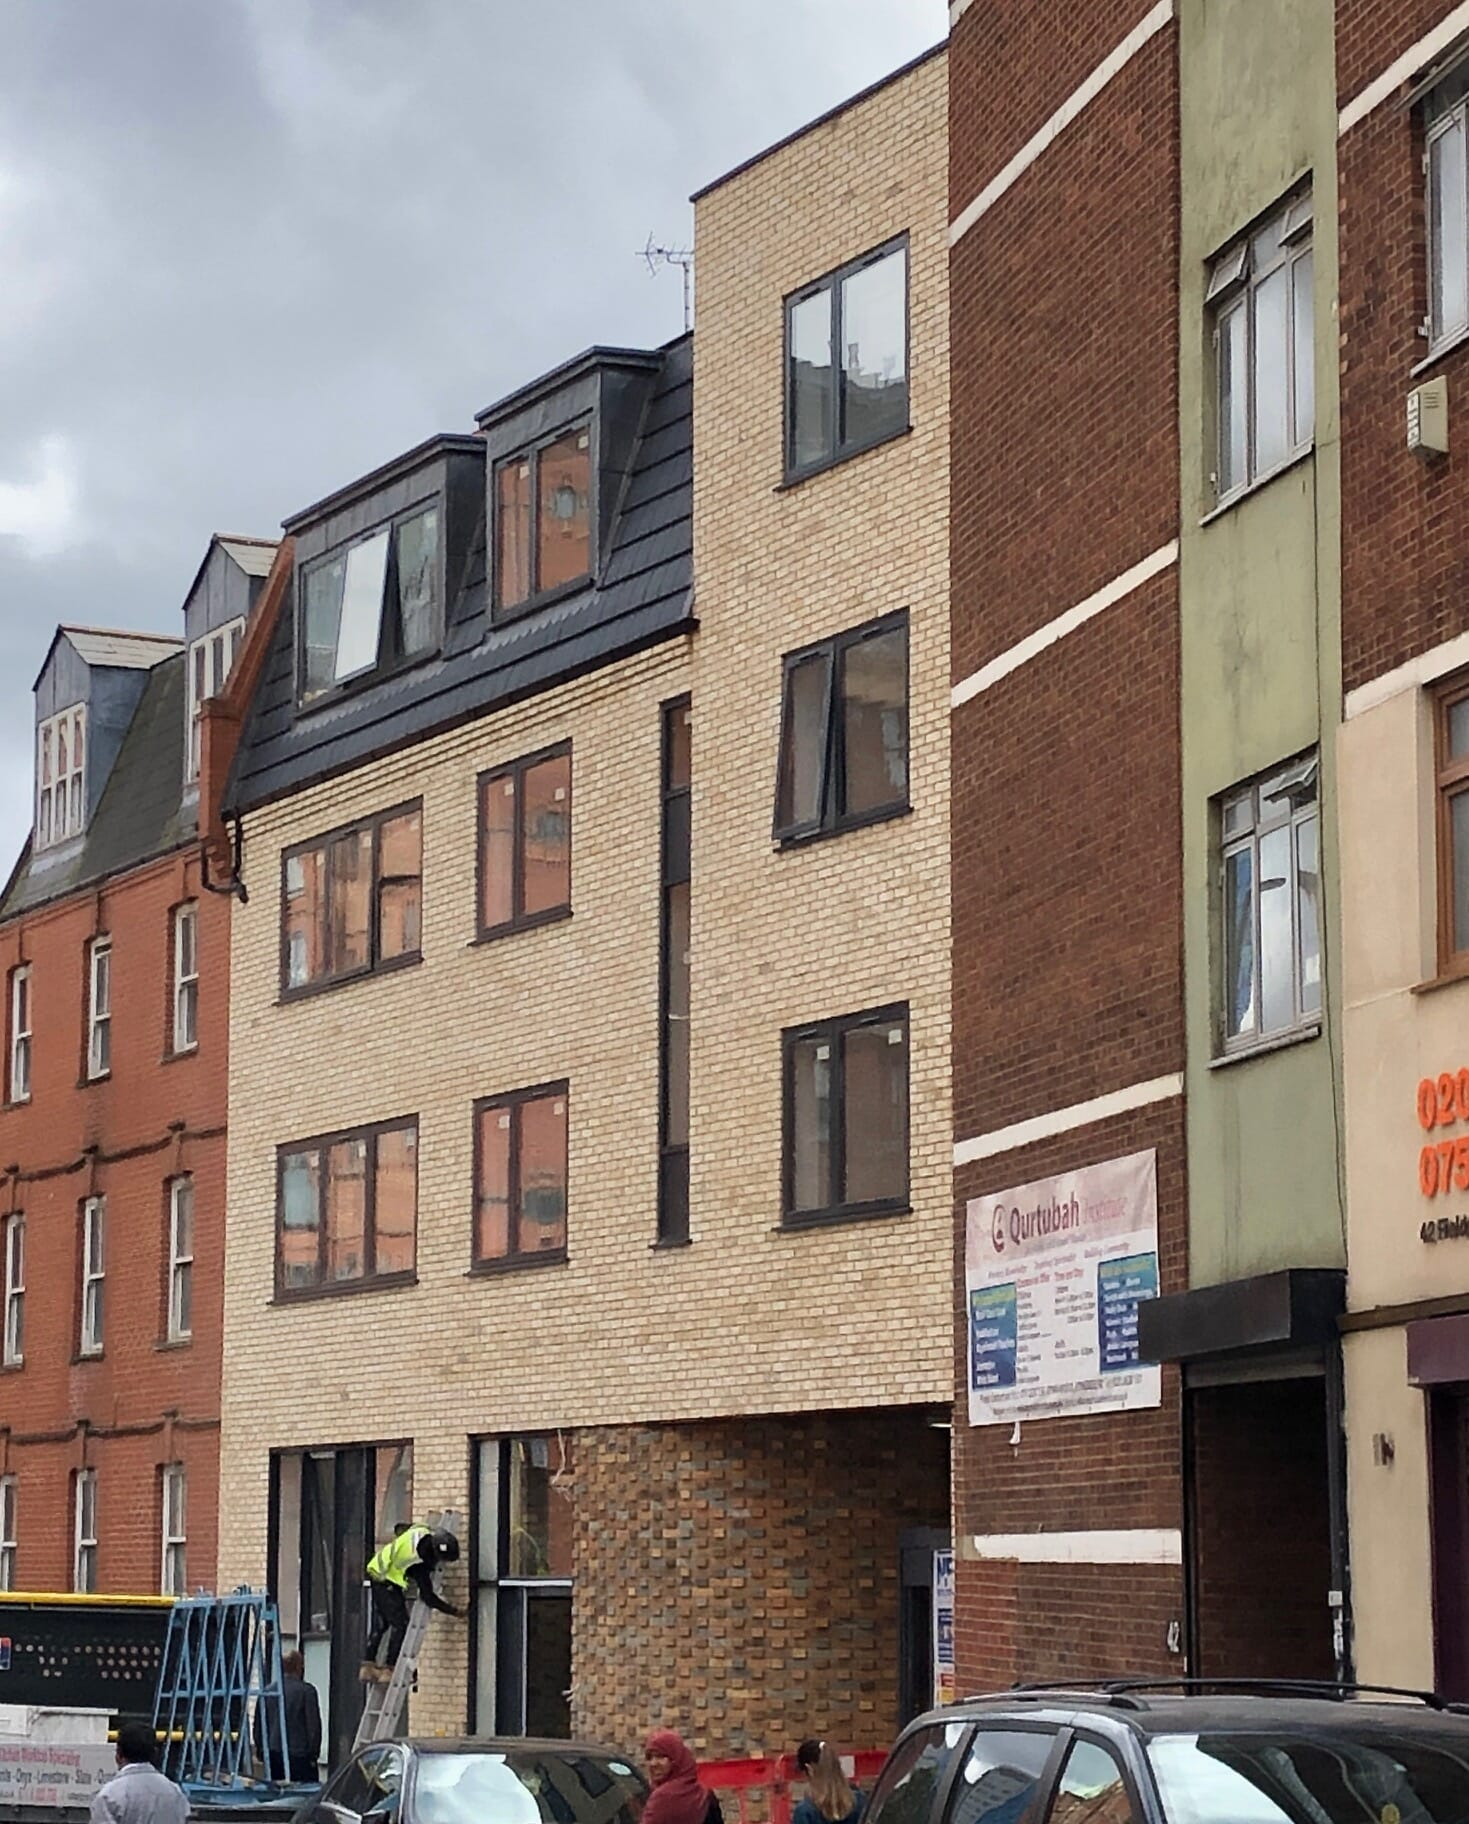 7 No Luxury Apartments Completed Project -May 2019 Contract Value £1.5m